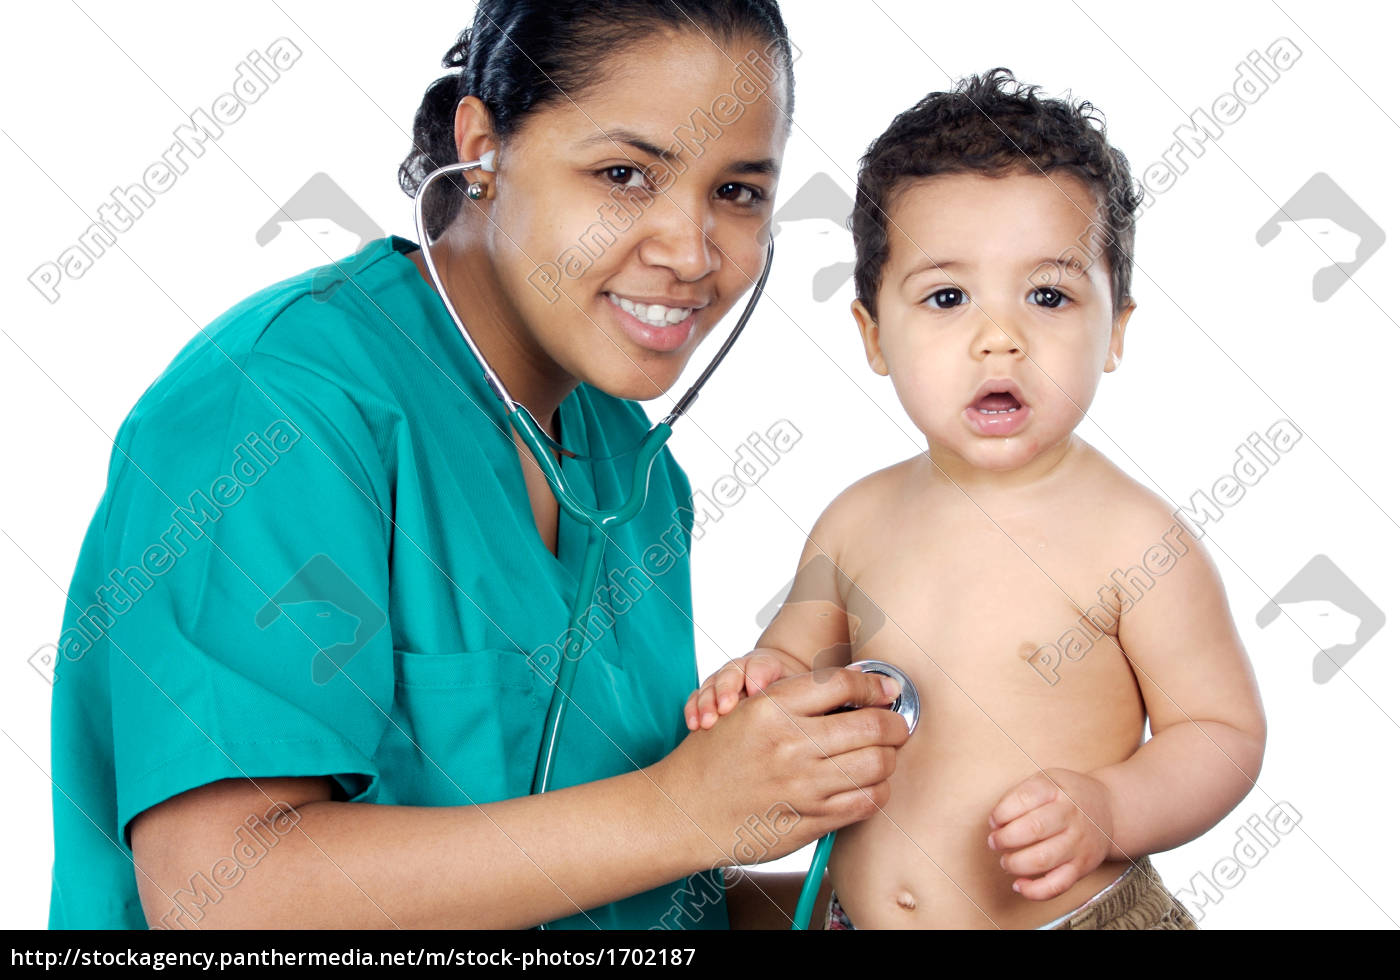 doctor, physician, medic, medical practicioner, baby, stethoscope - 1702187